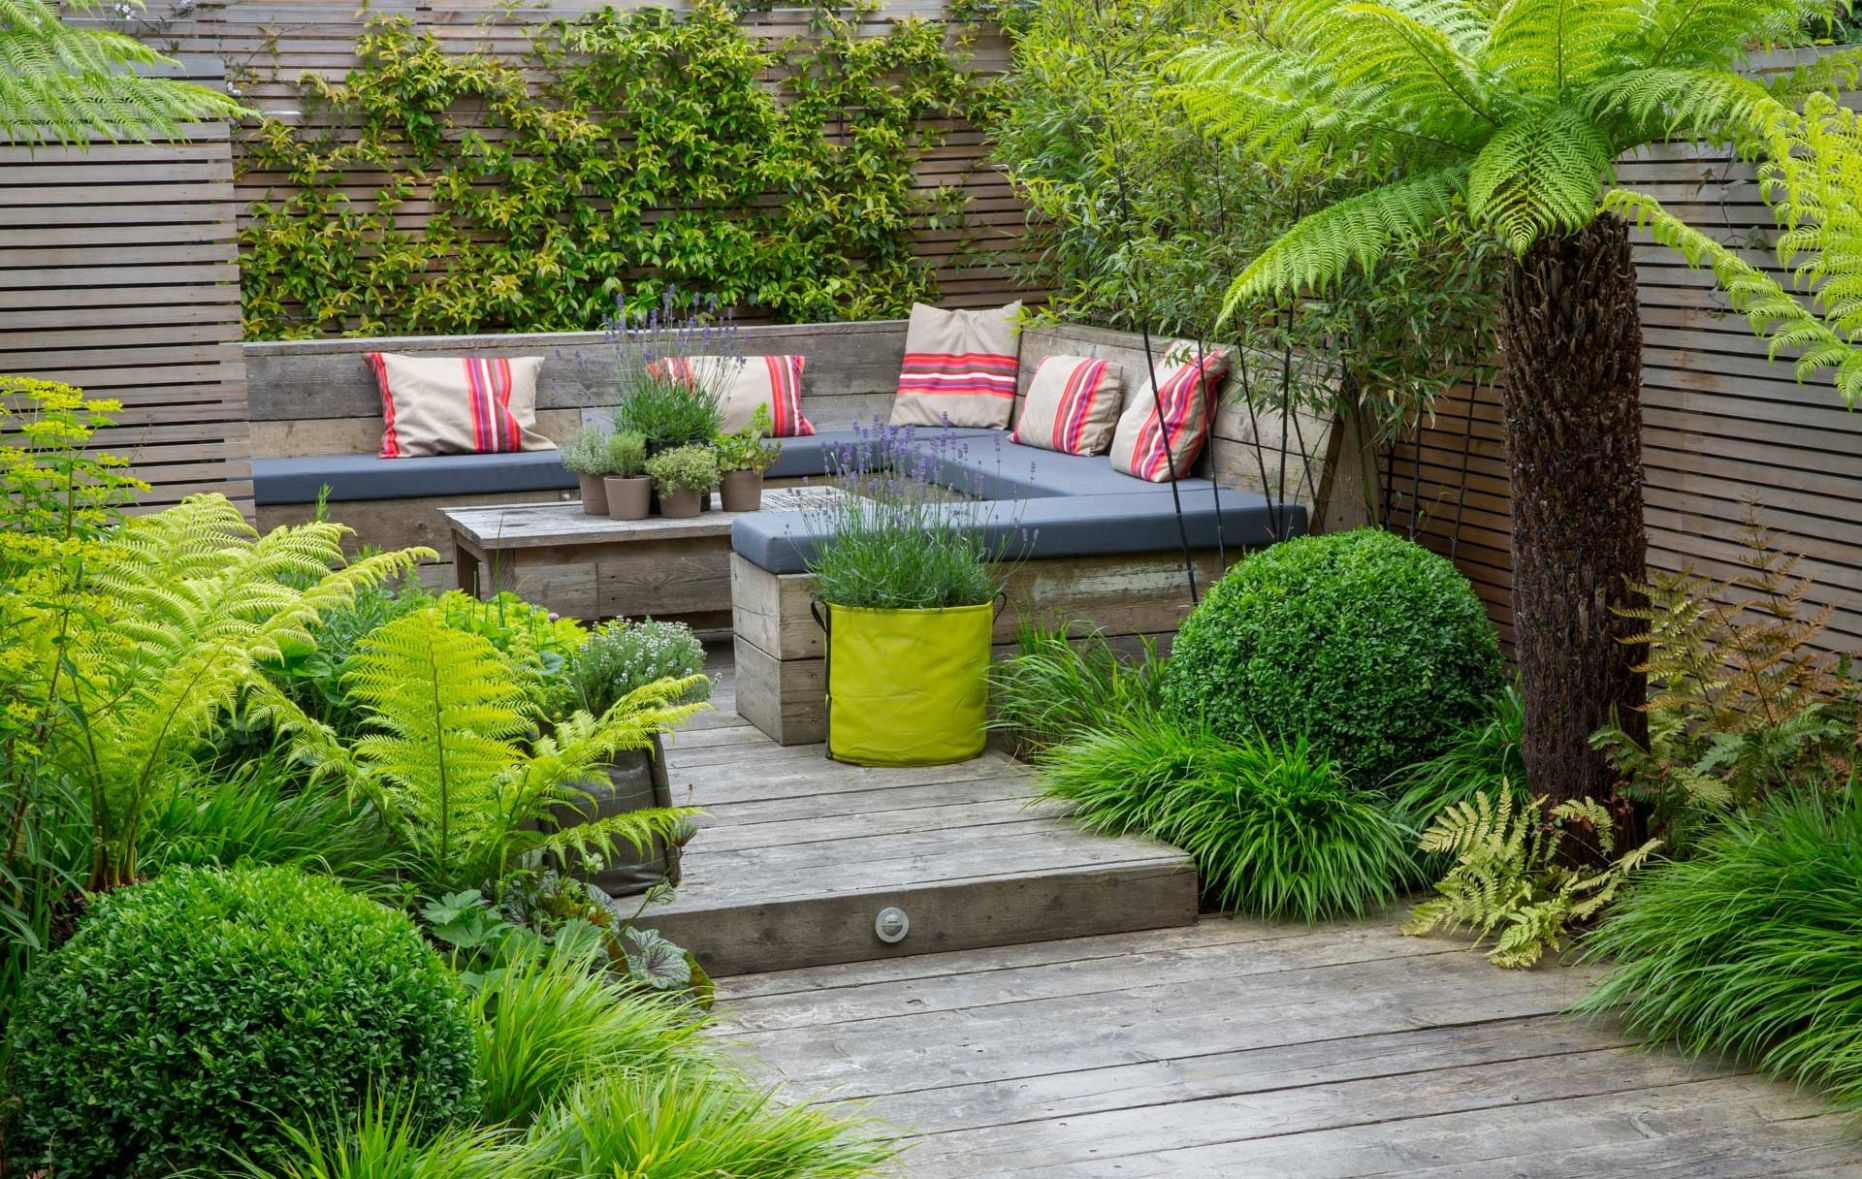 garden seating area Design London … | Garden seating area, Urban ...